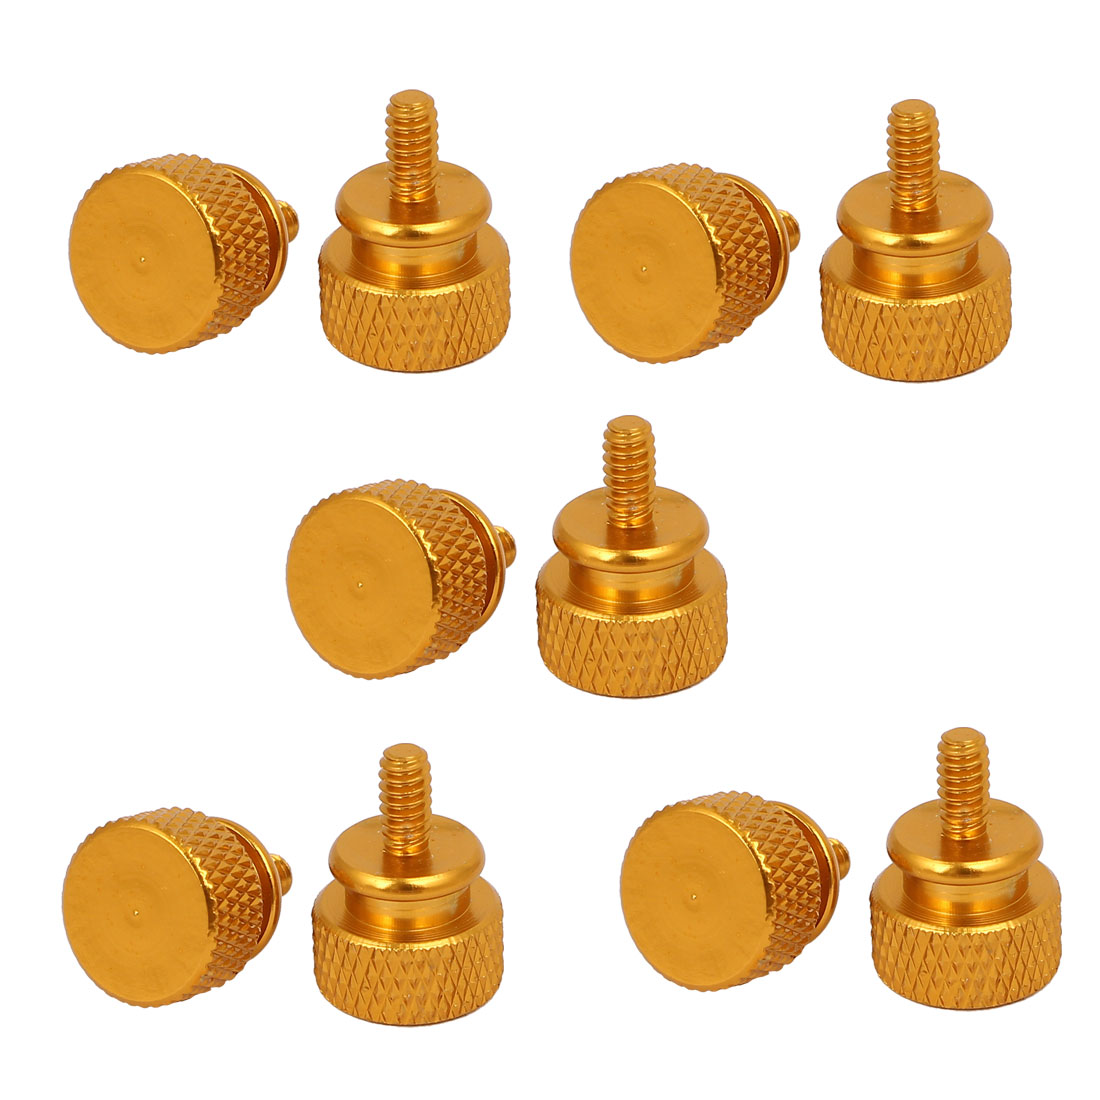 Computer PC Case Fully Threaded Knurled Thumb Screws Gold Tone 6#-32 10pcs